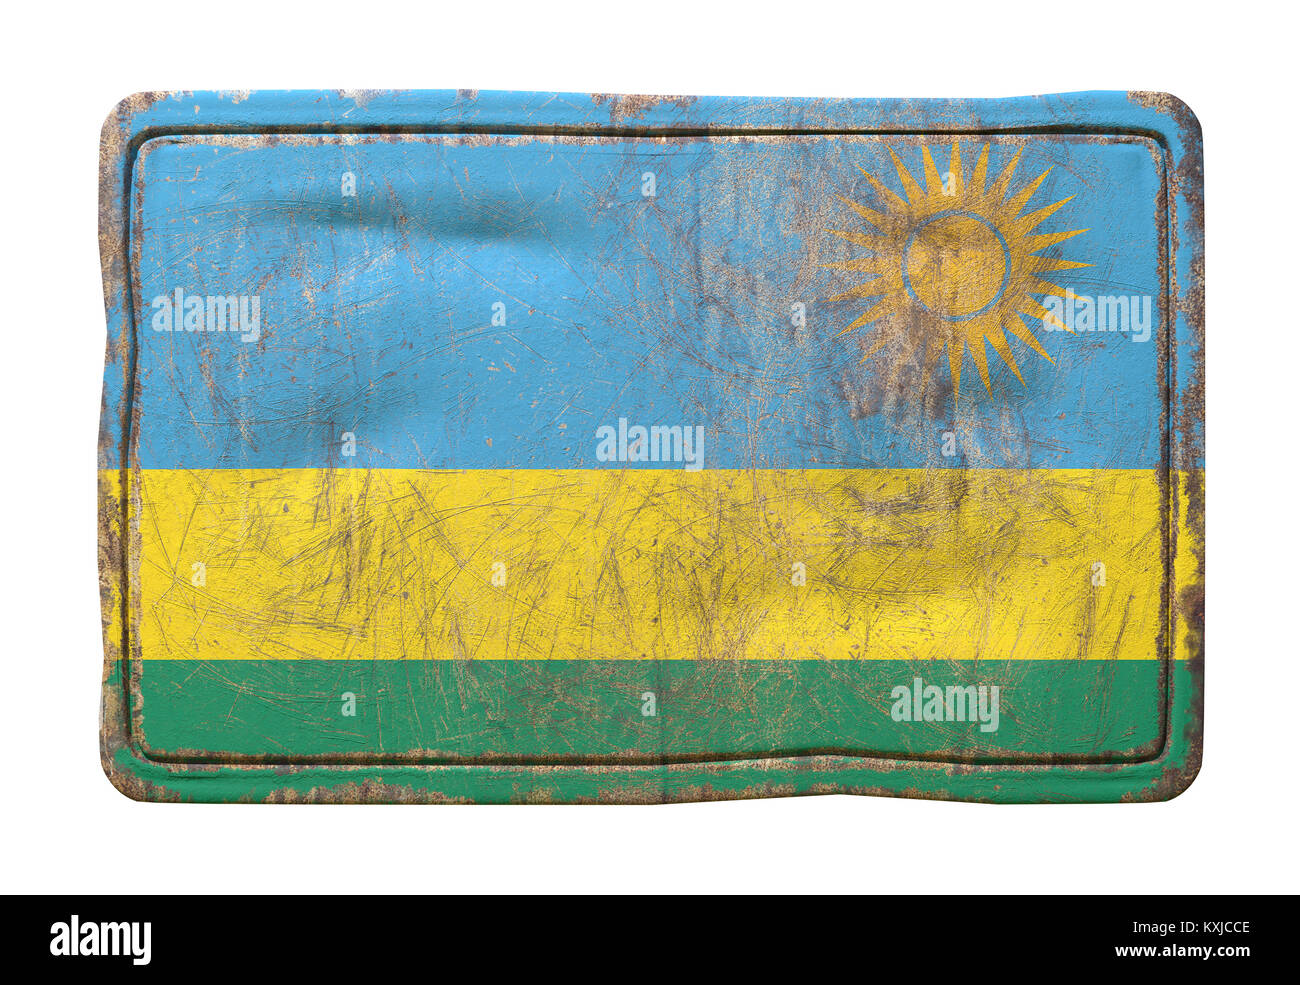 3d rendering of a Republic of Rwanda flag over a rusty metallic plate. Isolated on white background. - Stock Image